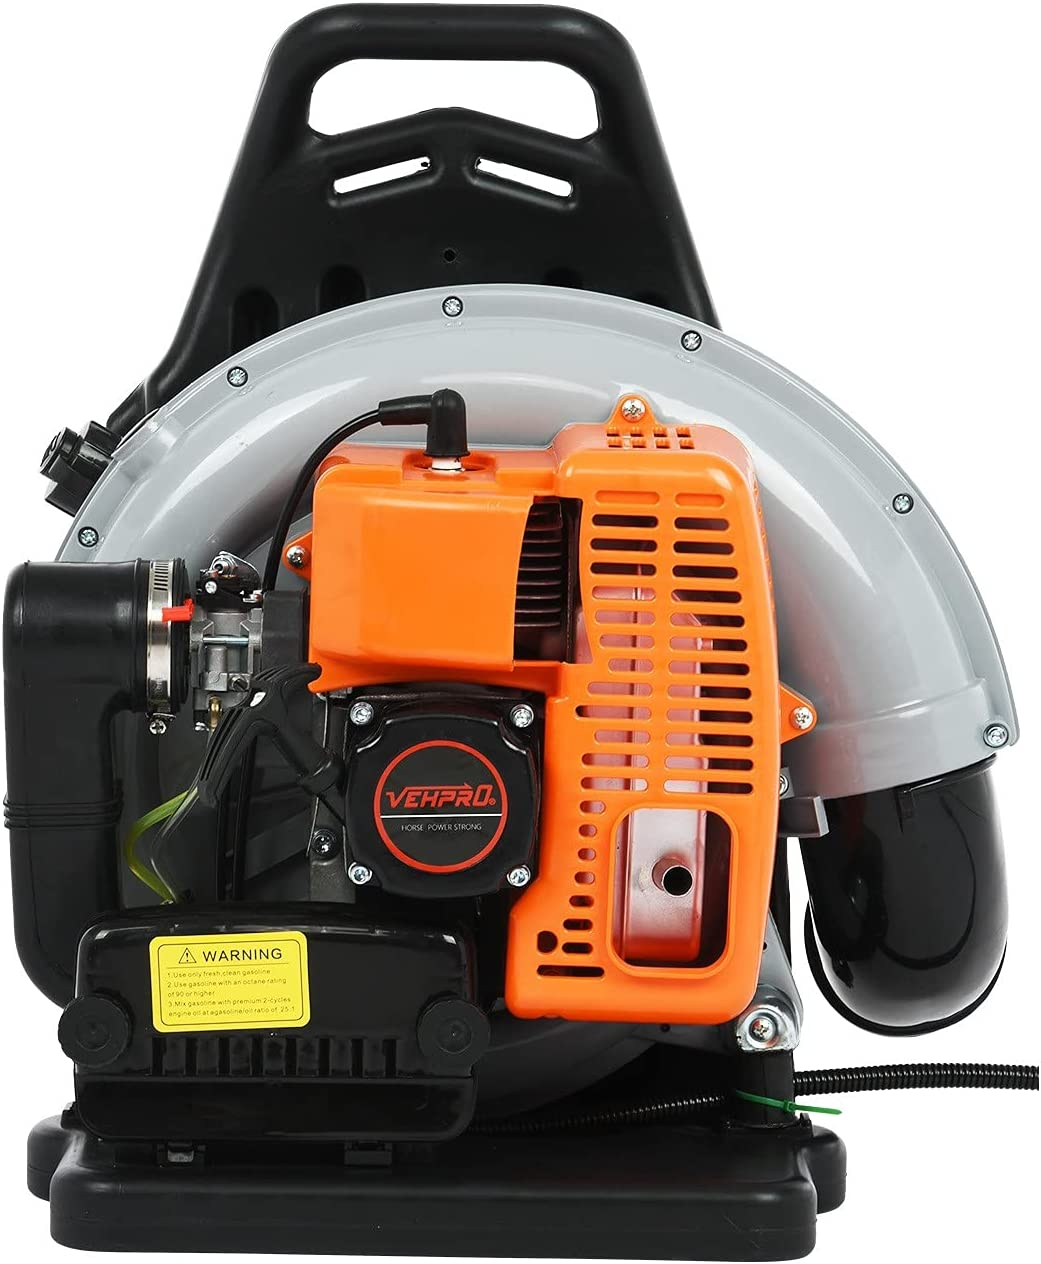 Wdminyy Backpack Leaf Blower 3H-p Popular High B Powered Gas Performance New item